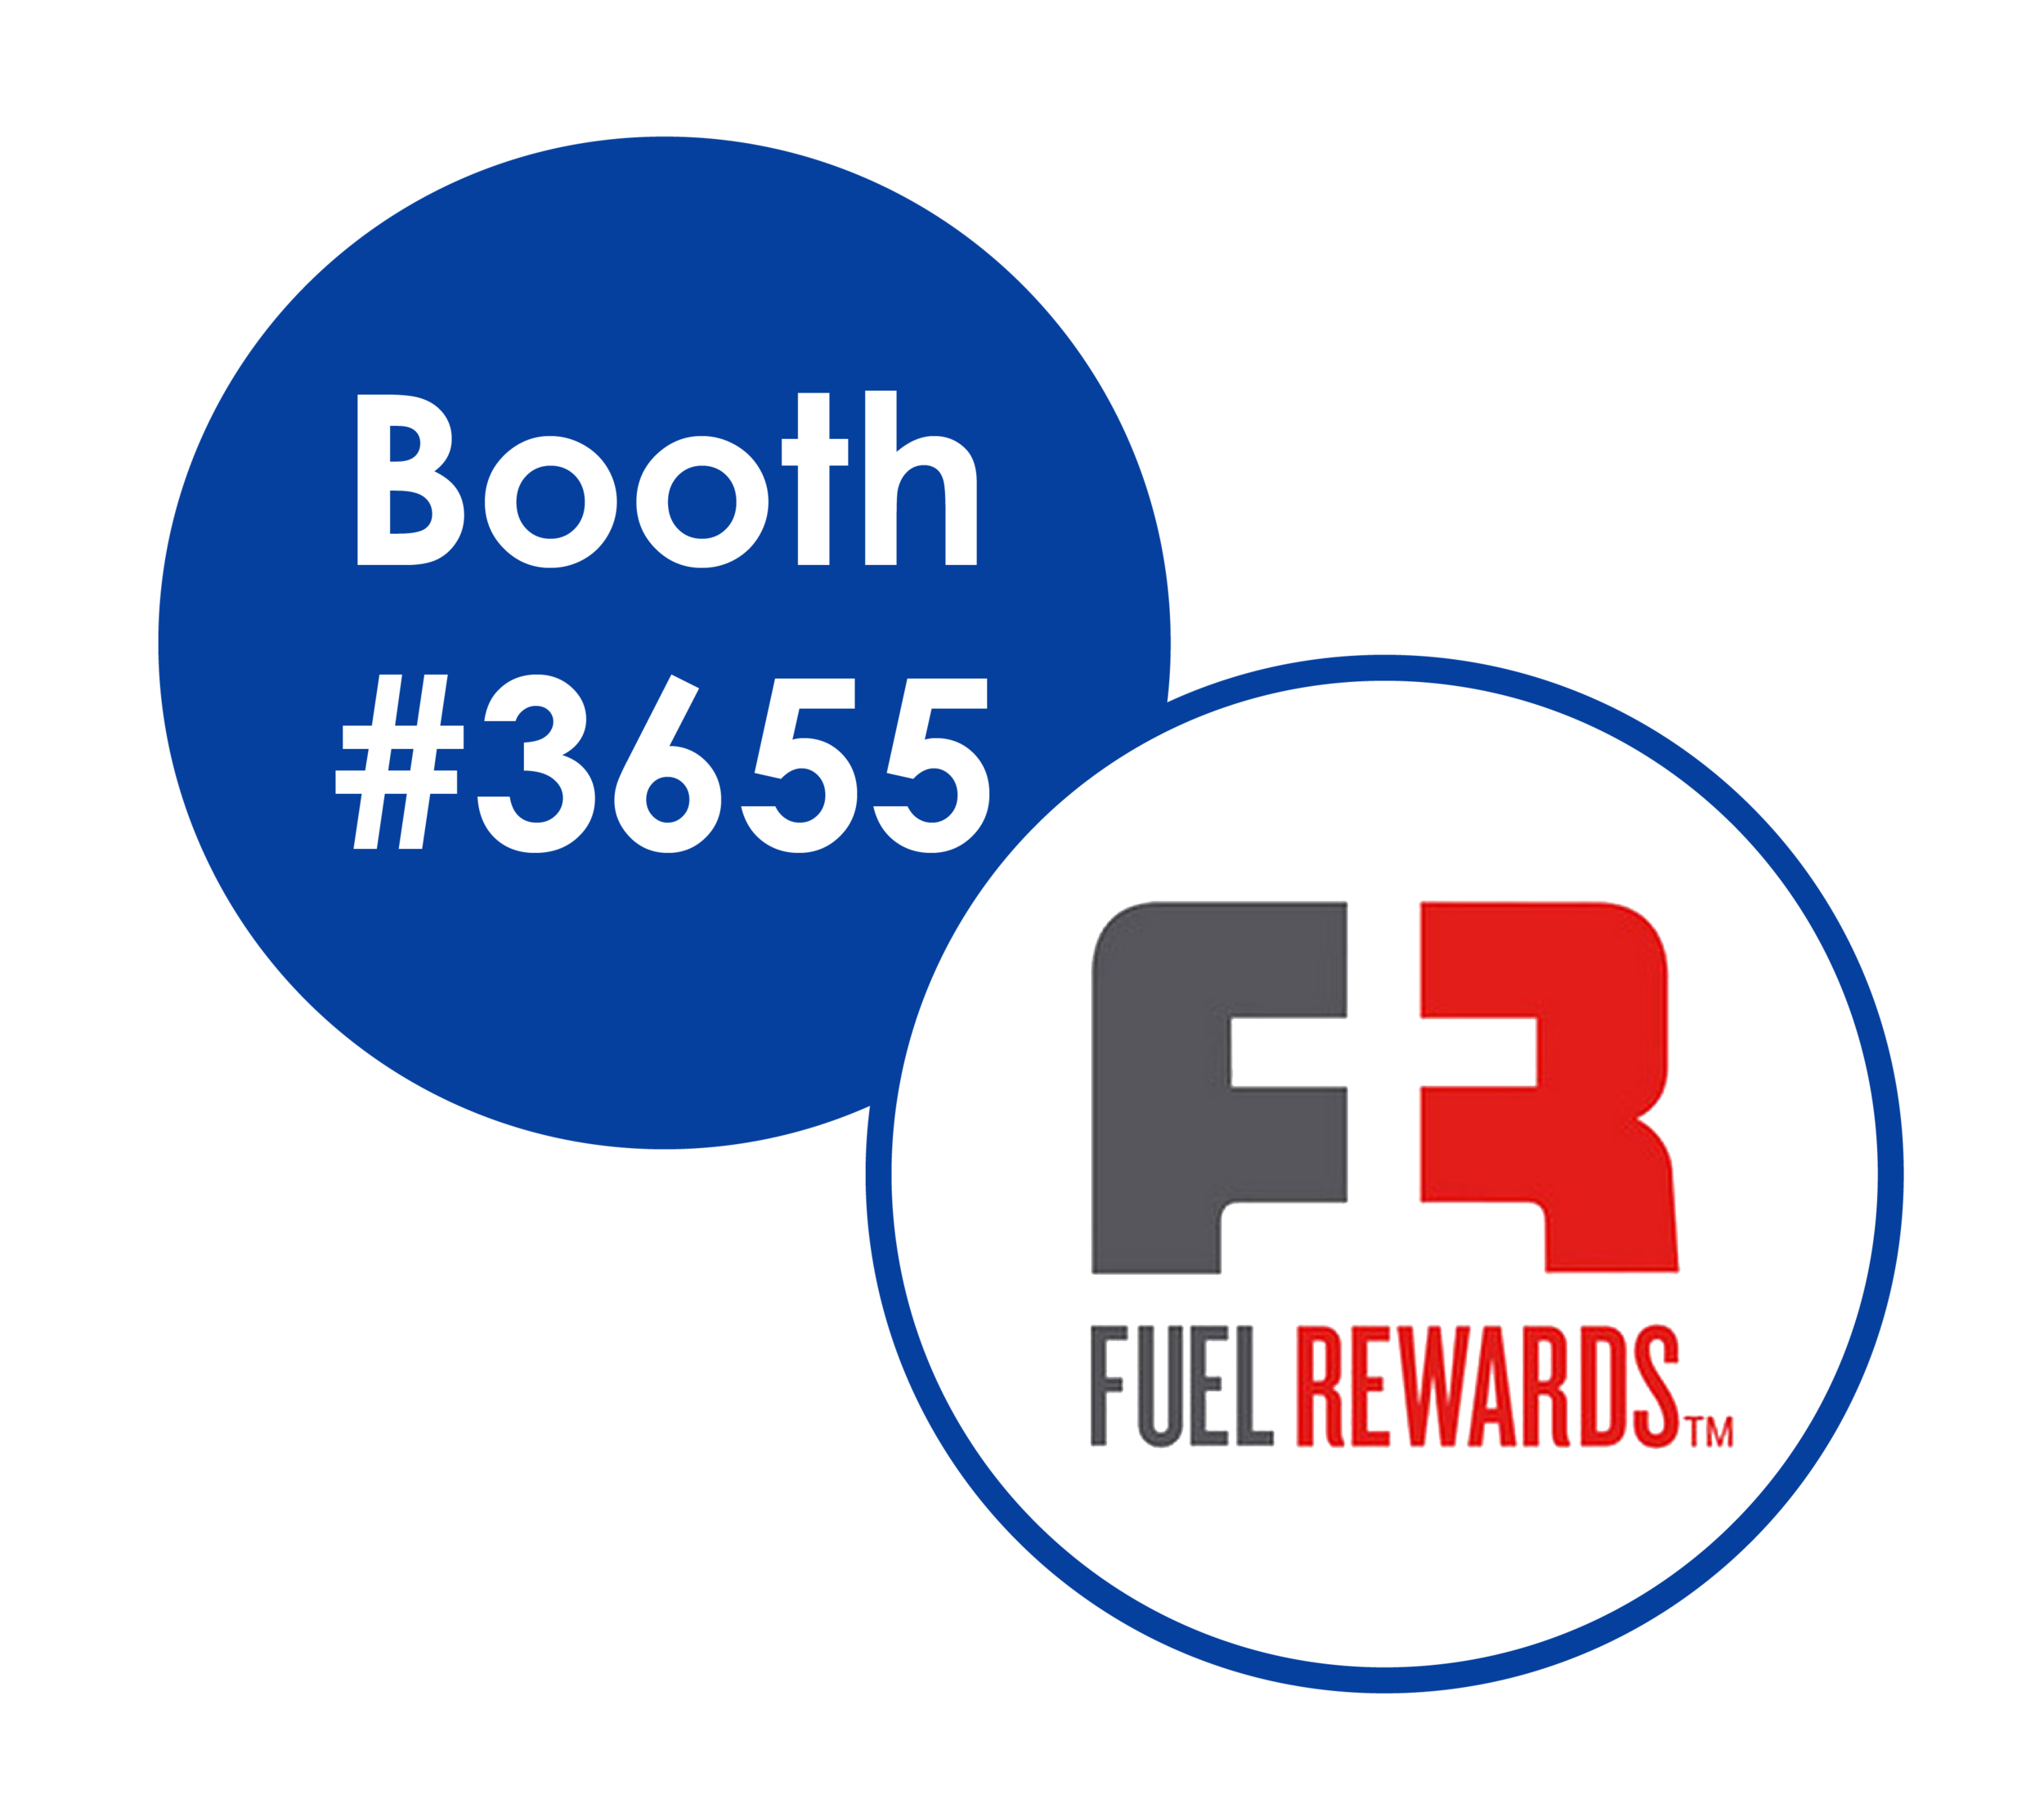 Acquisition-Booth Numbers-V1-JH-2019-7-25_Fuel Rewards.png